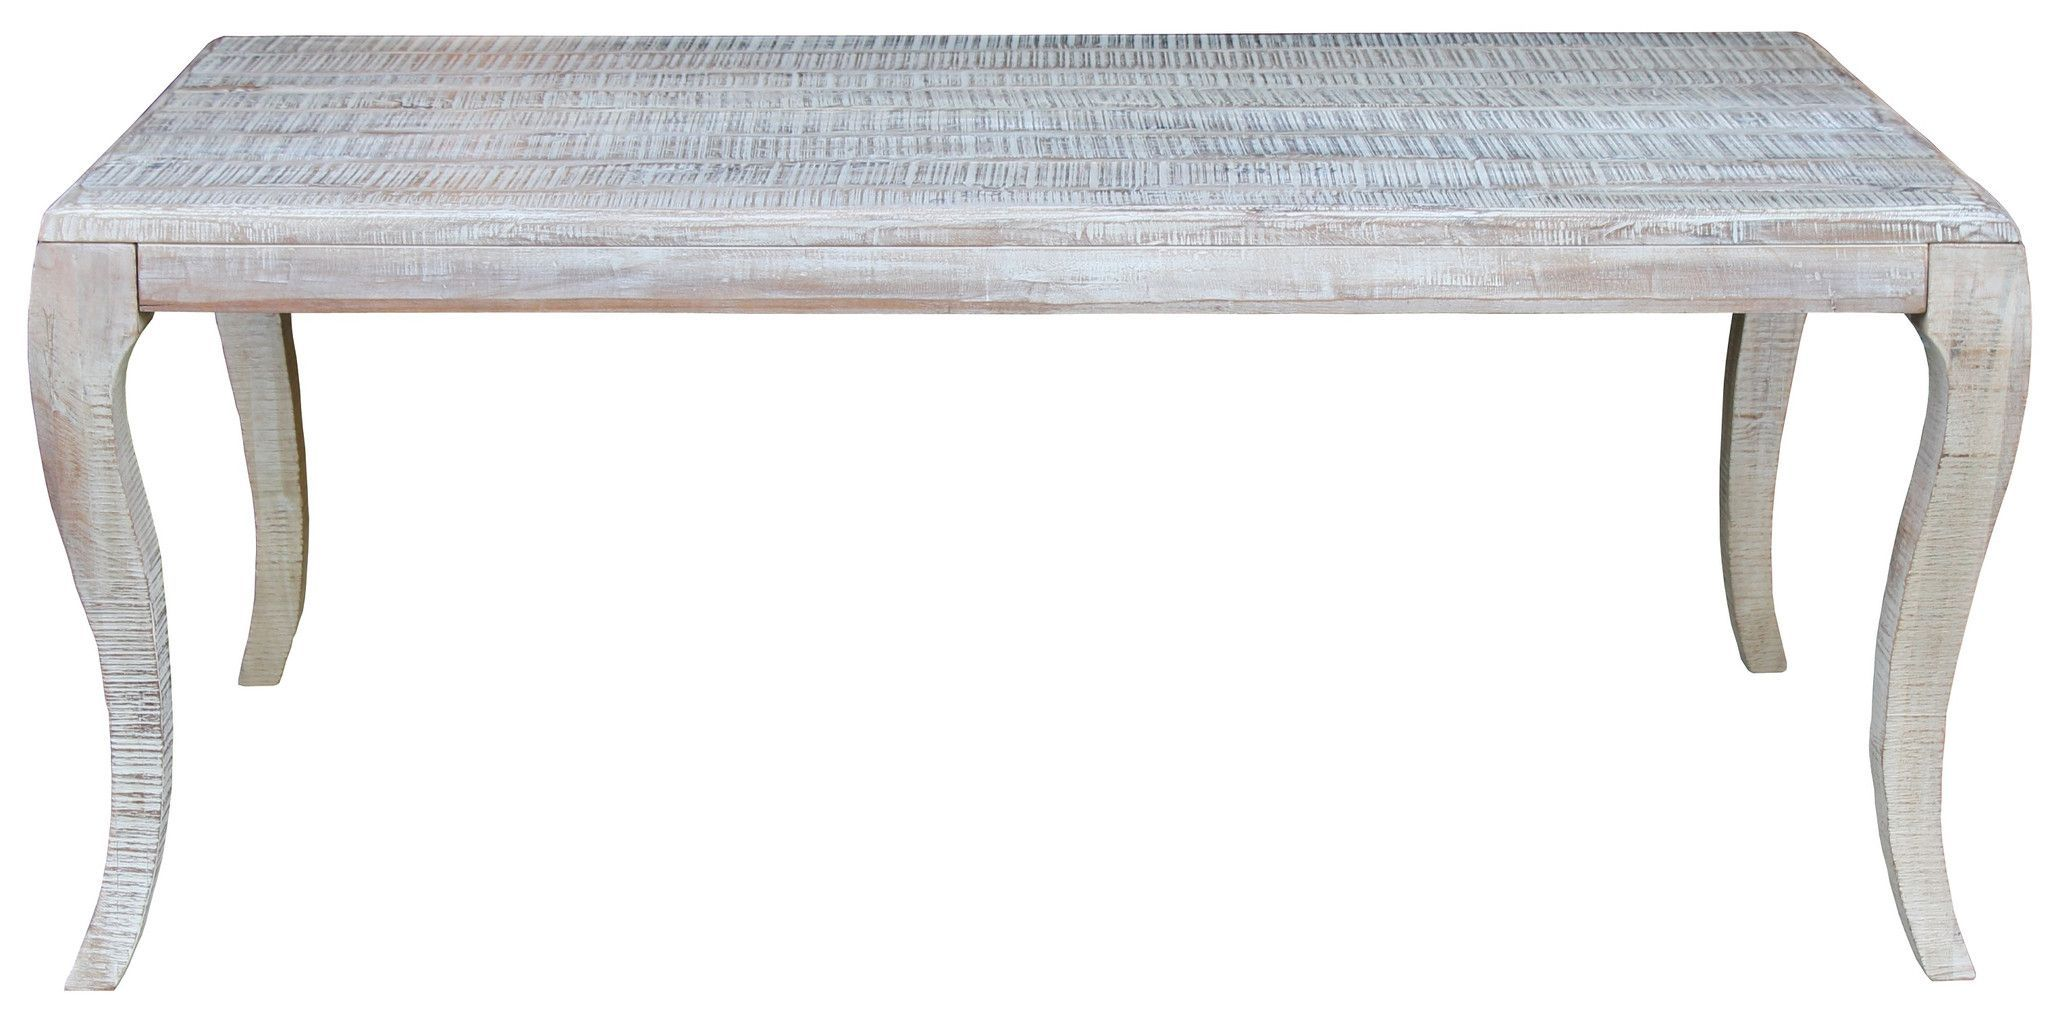 Mystic Wood Dining Table in Reclaimed Acacia Wood